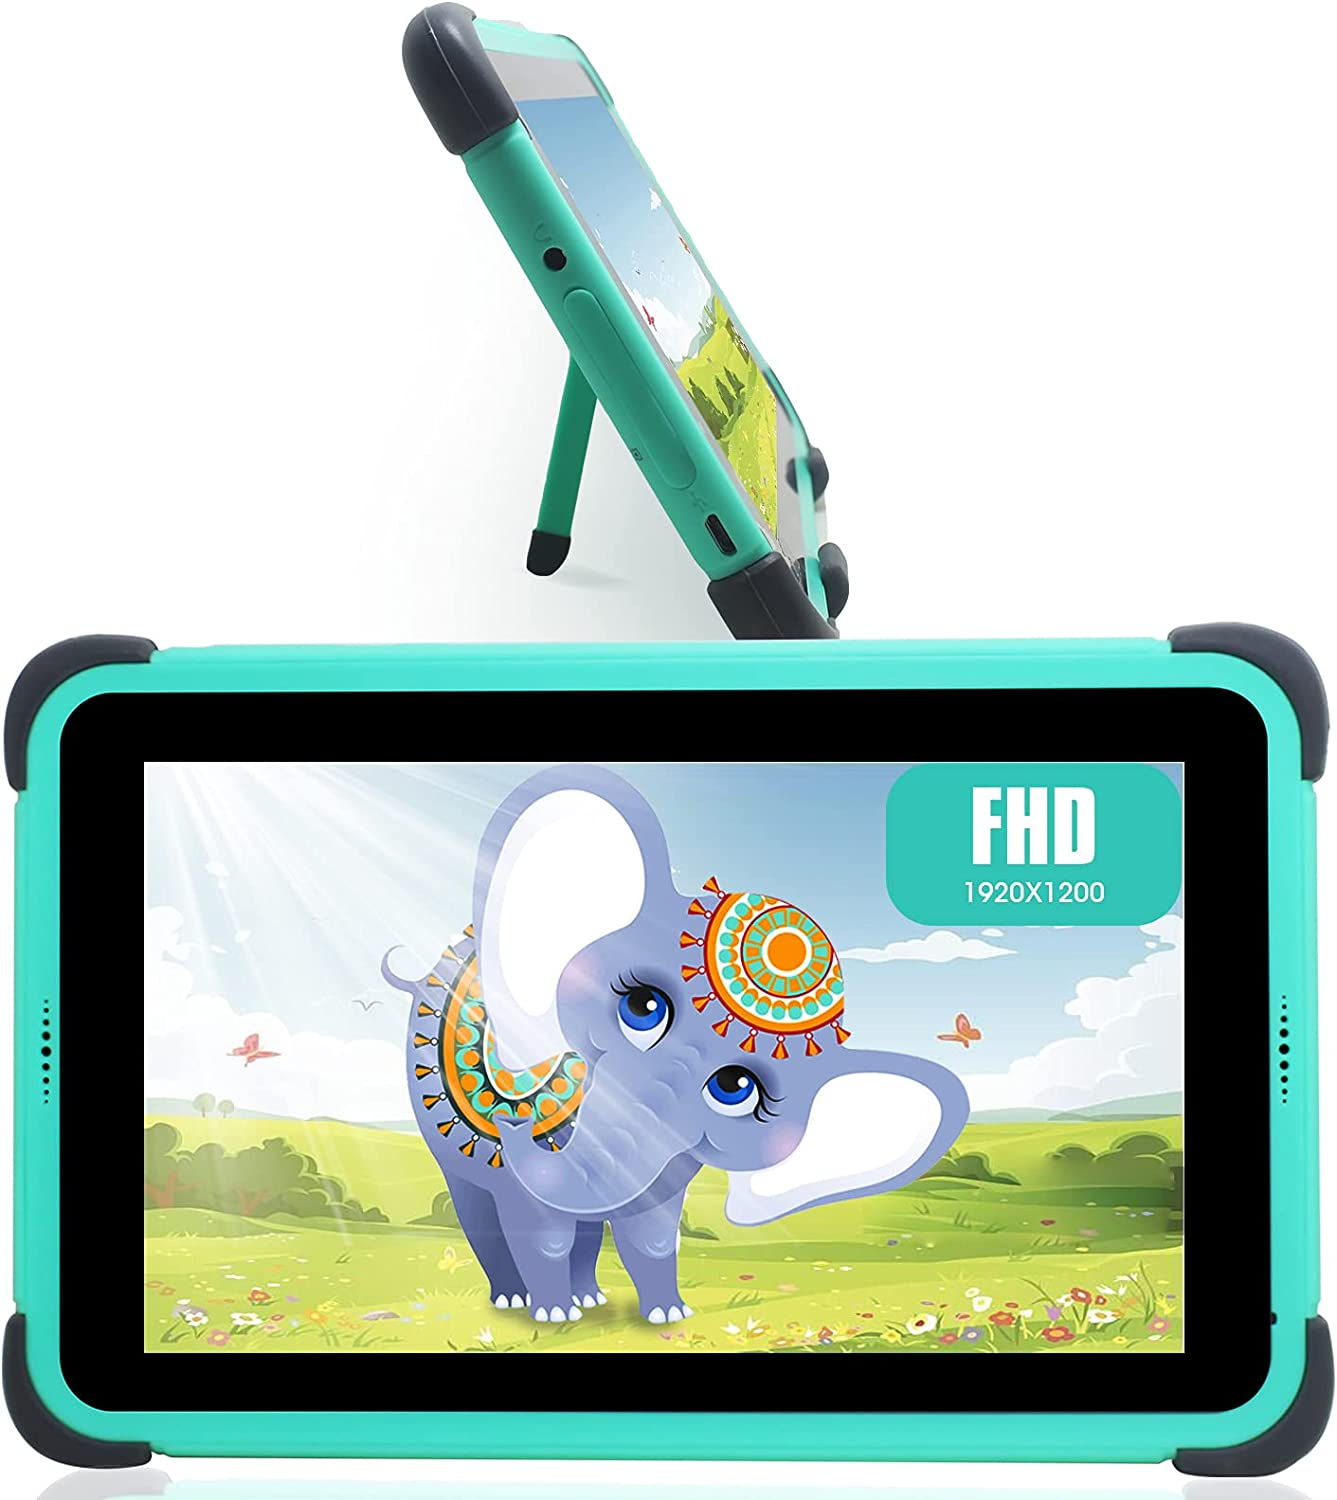 Kids excellence Tablet 8 Inch Free shipping anywhere in the nation 1920x1200 IPS Tabl HD Android Display Full 11